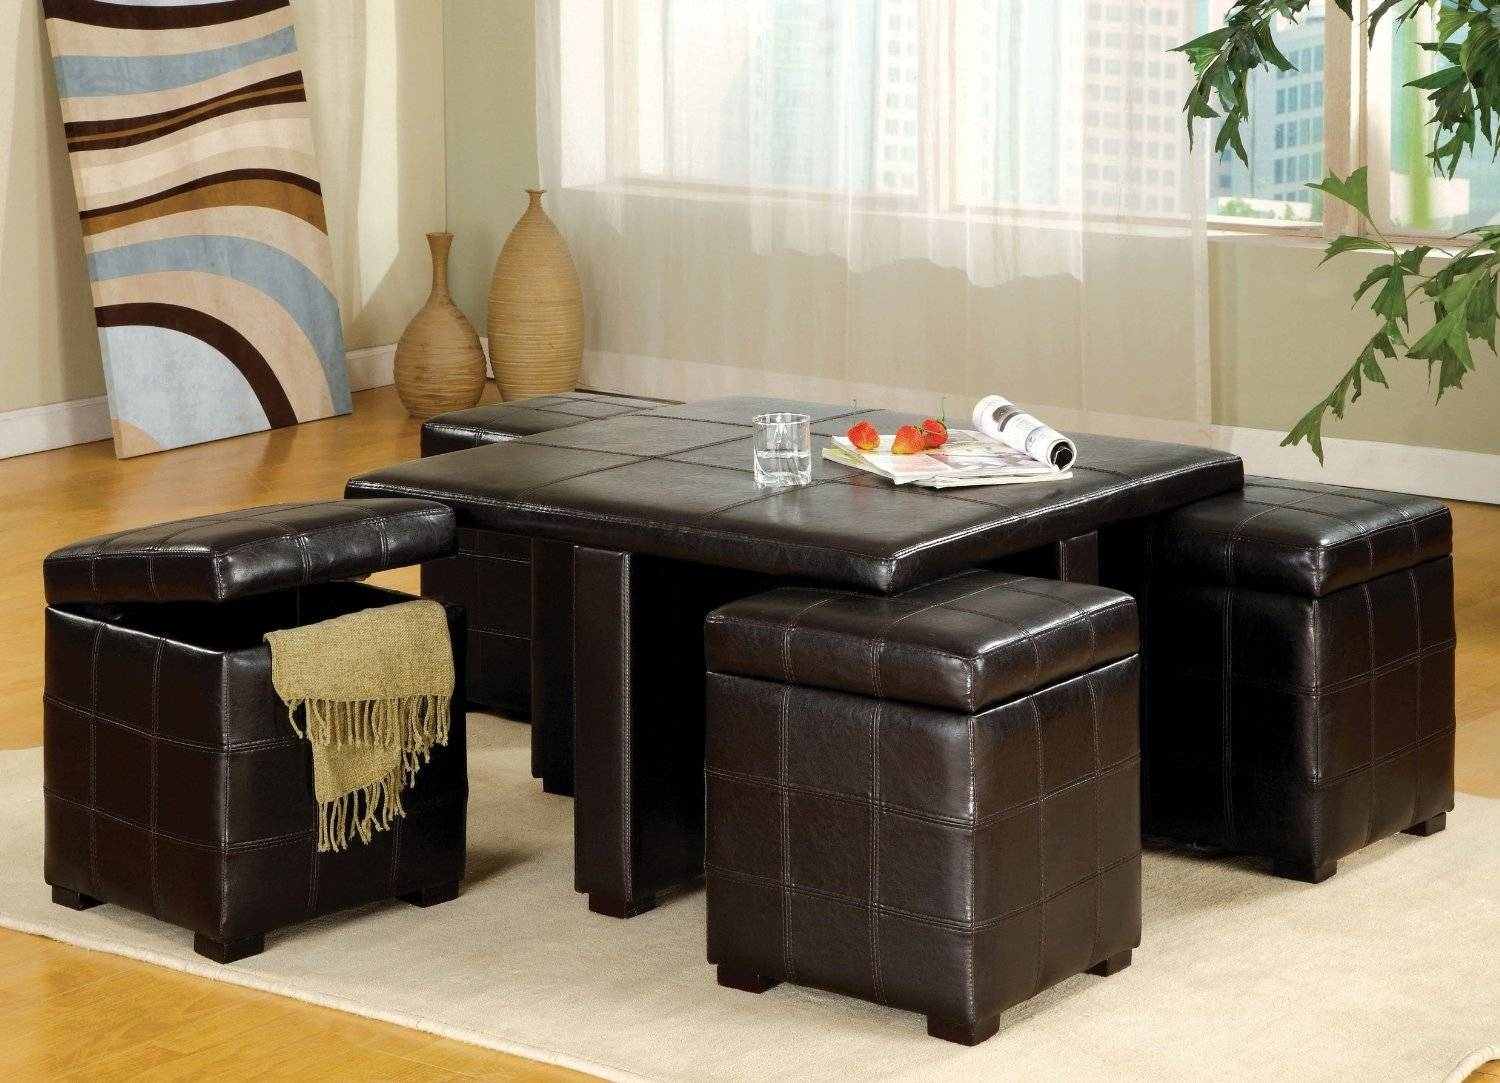 Leather Ottoman Coffee Table Storage | Coffee Tables Decoration With Regard To Square Coffee Tables With Storages (View 19 of 30)